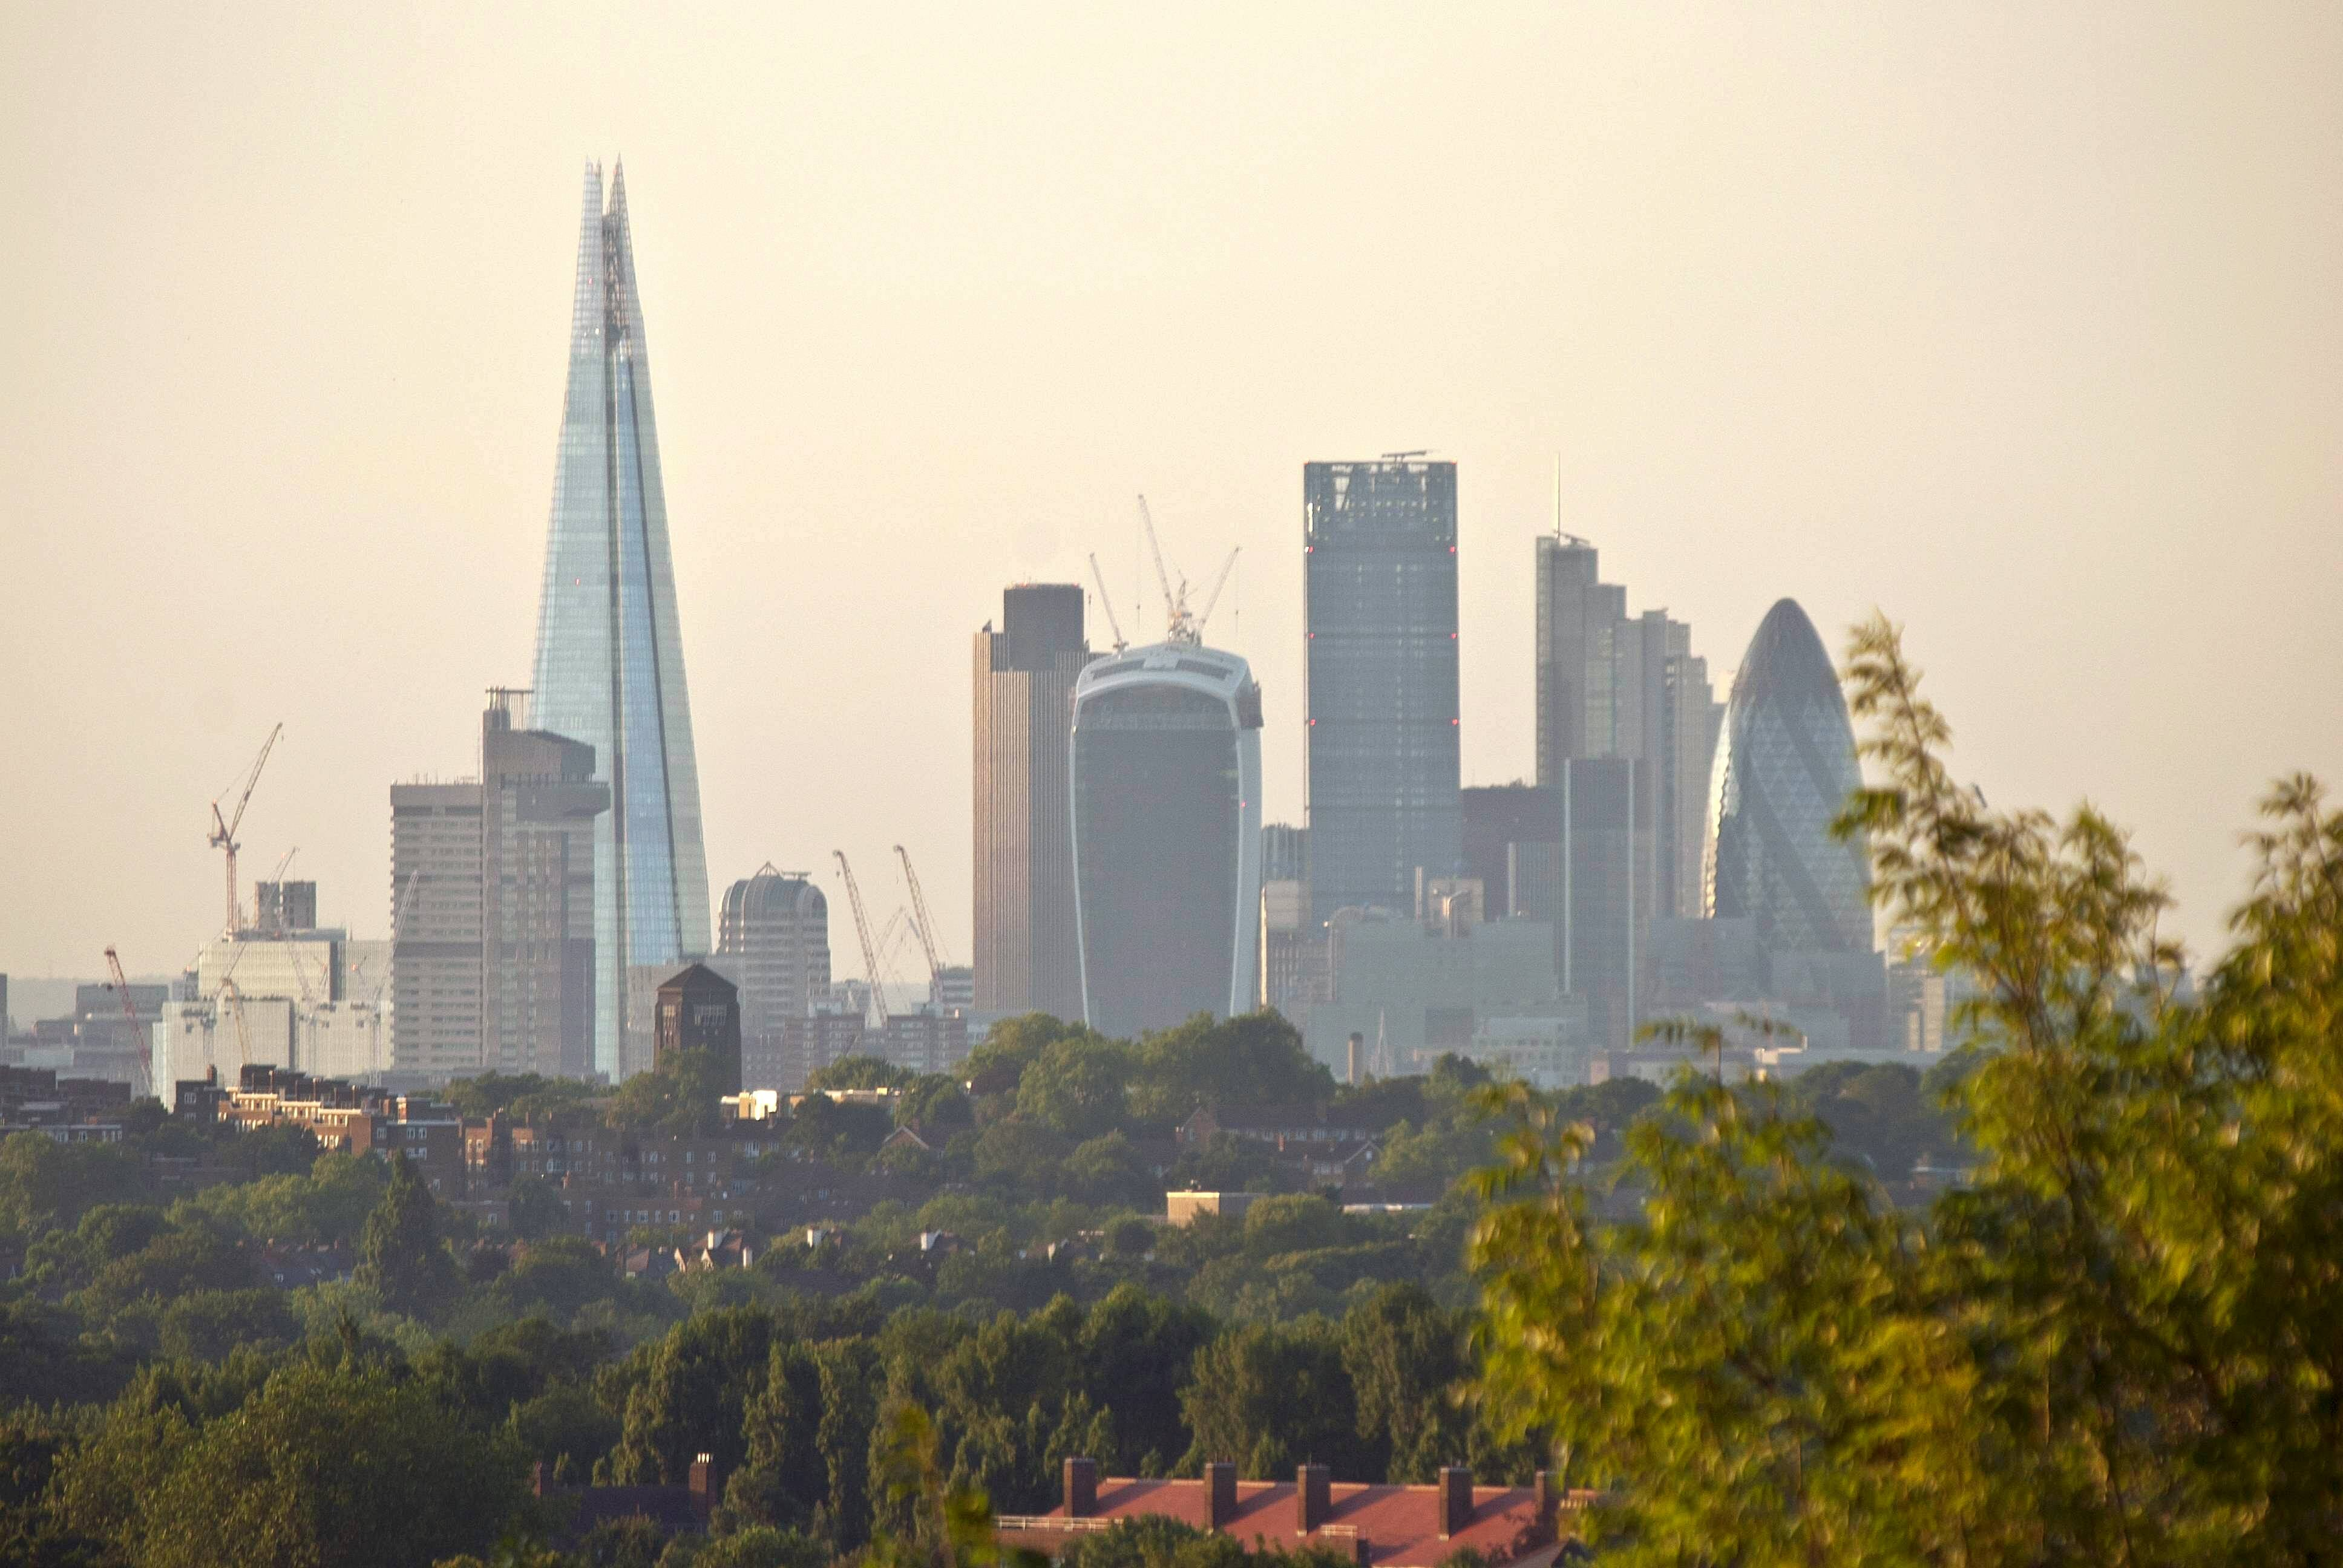 Views of the City of London from Norwood Park.